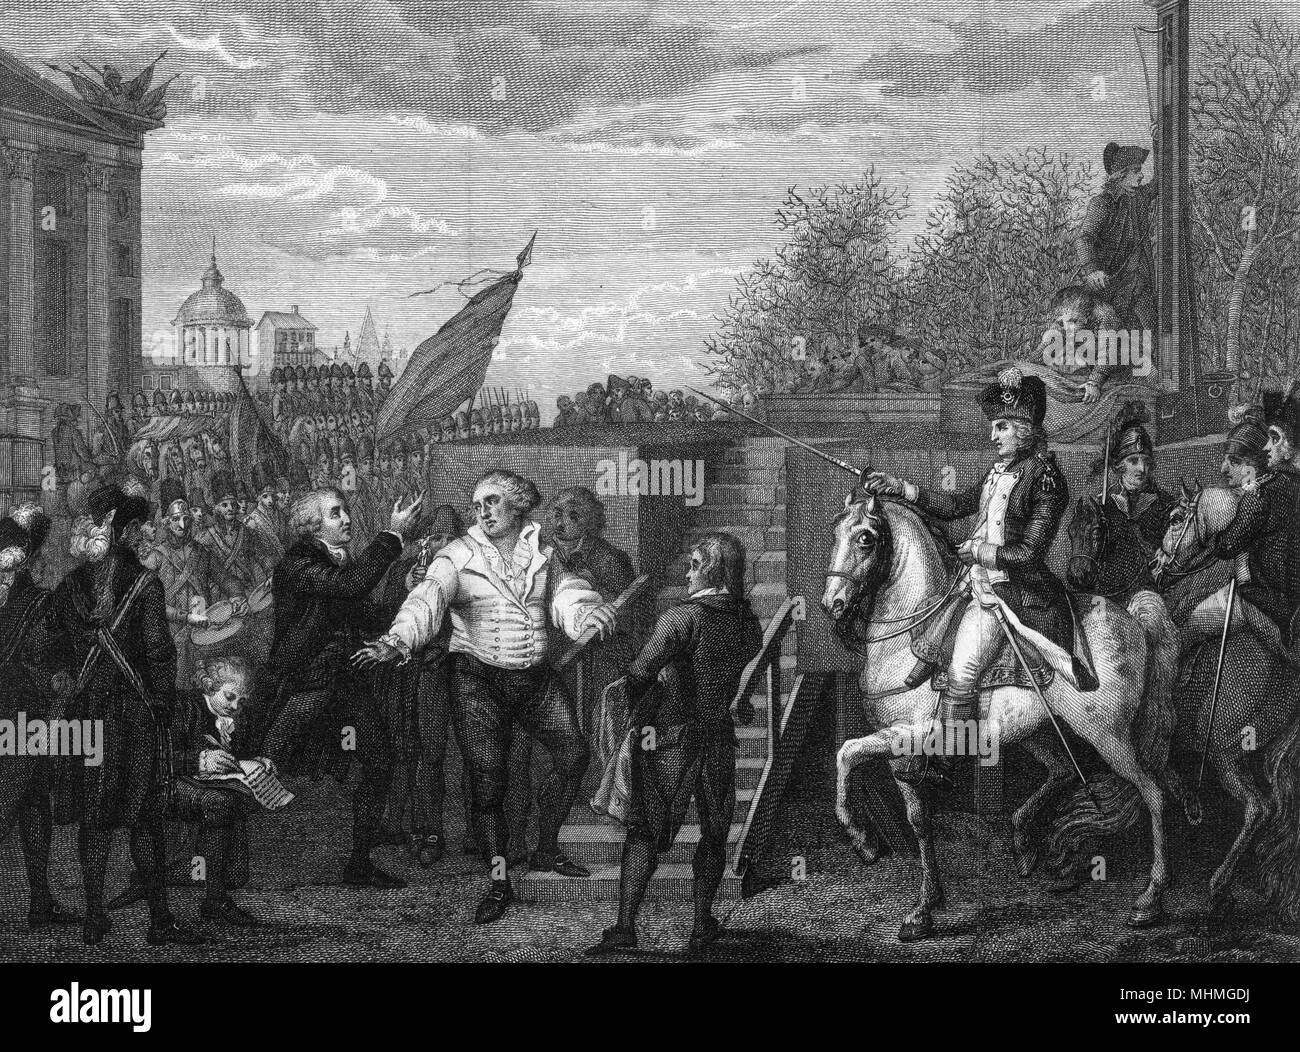 King Louis XVI bids a last goodbye to his friends before mounting the scaffold to the guillotine.        Date: 21 January 1793 - Stock Image